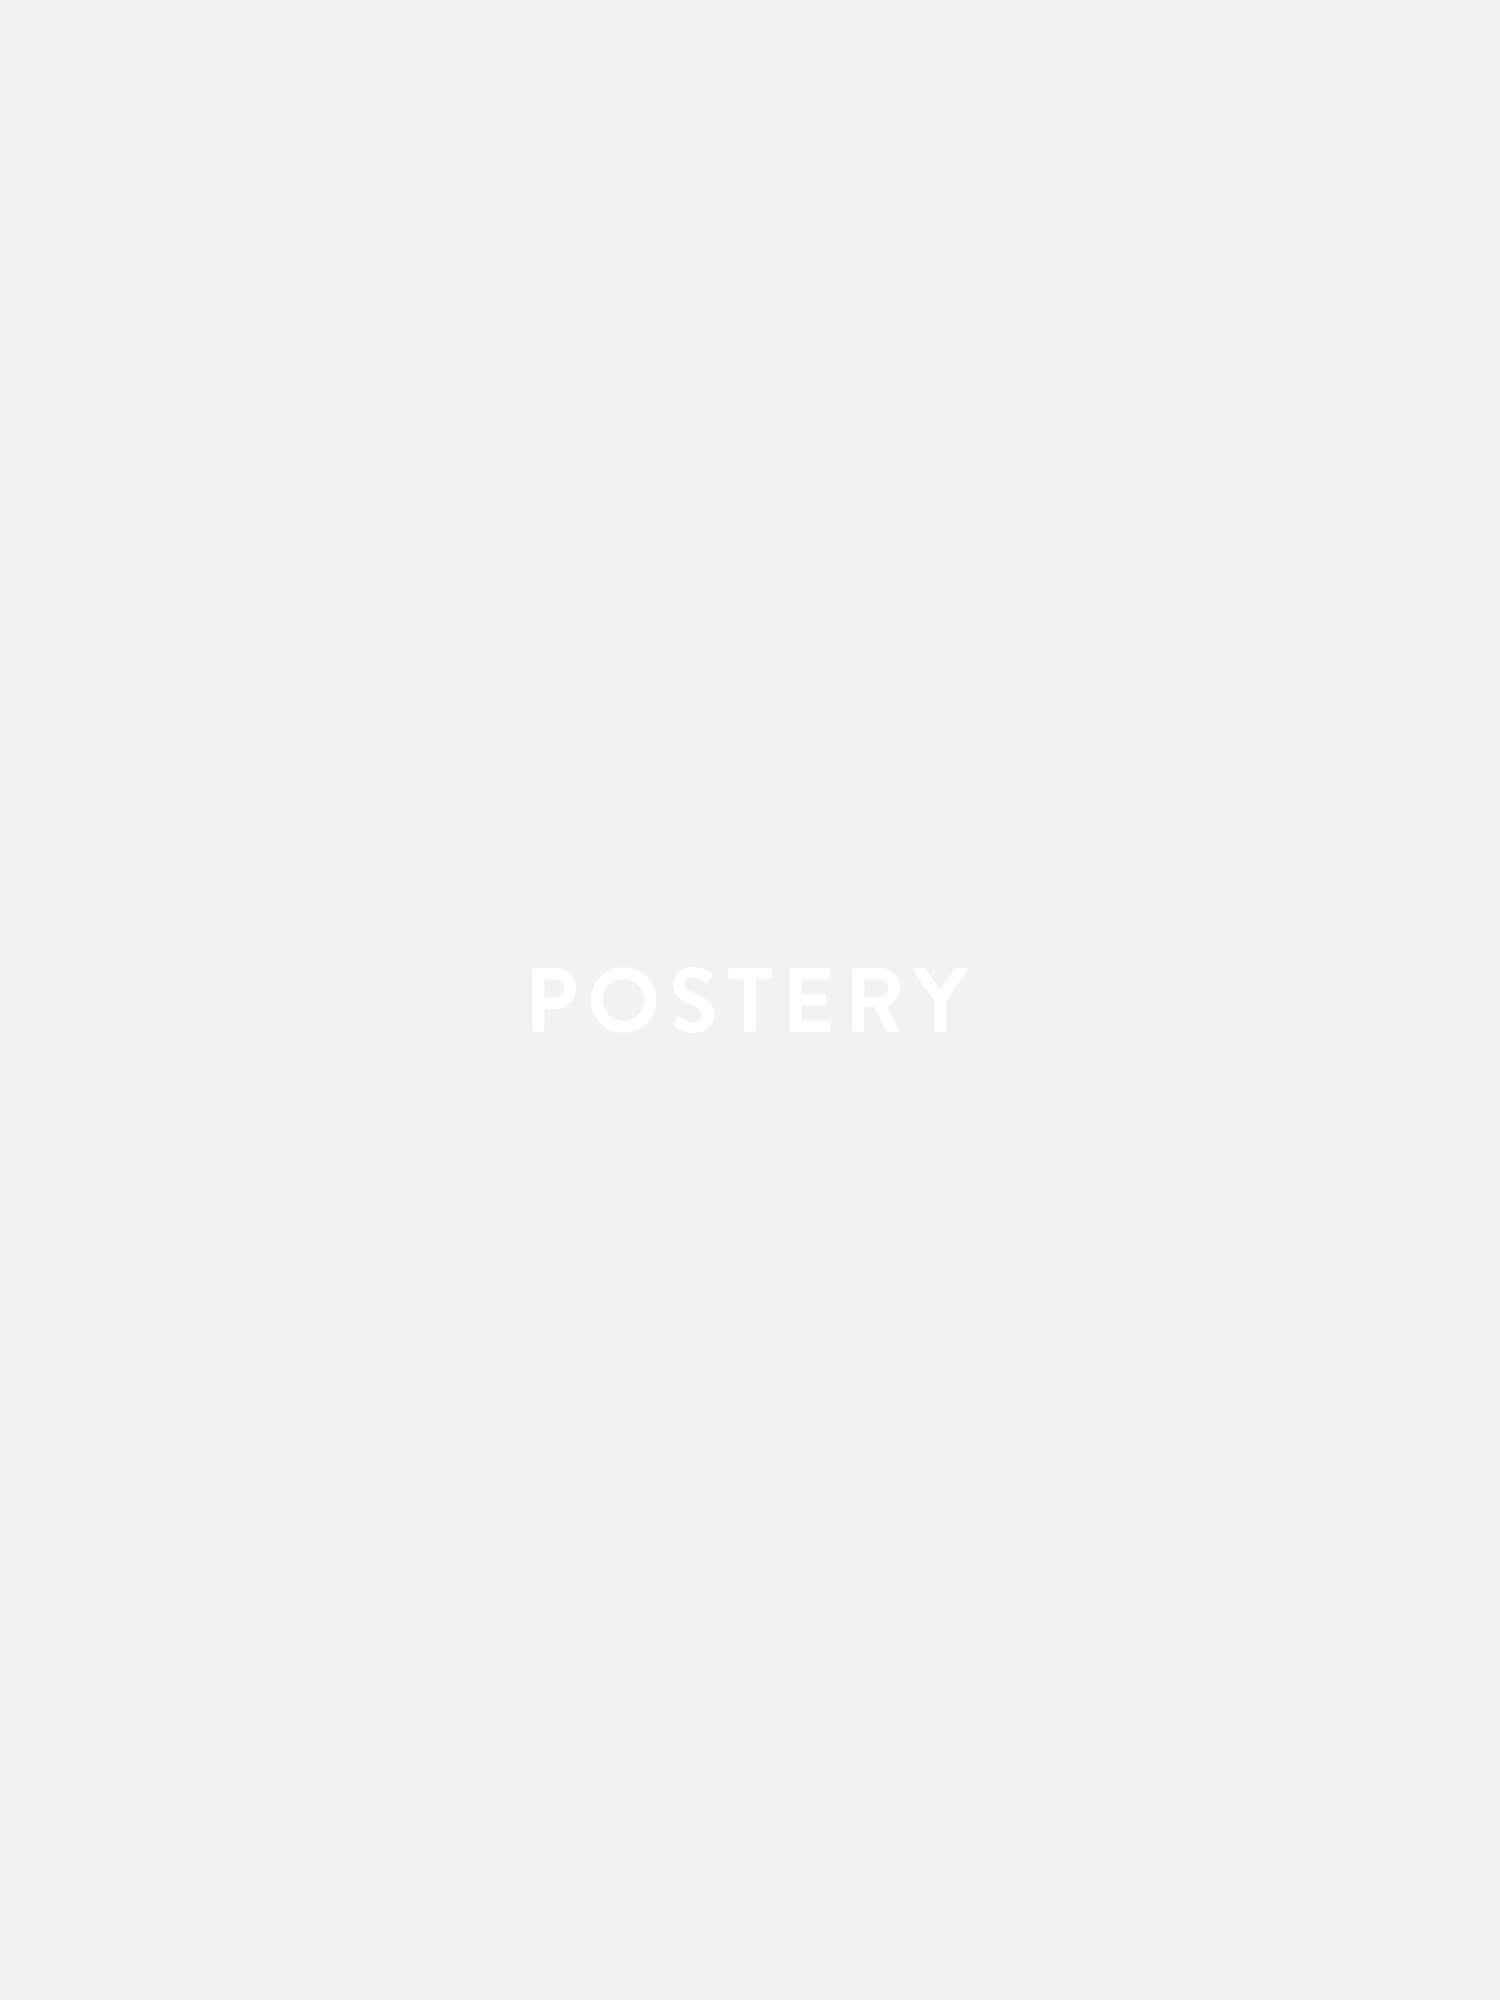 Sunrise Turtle Poster